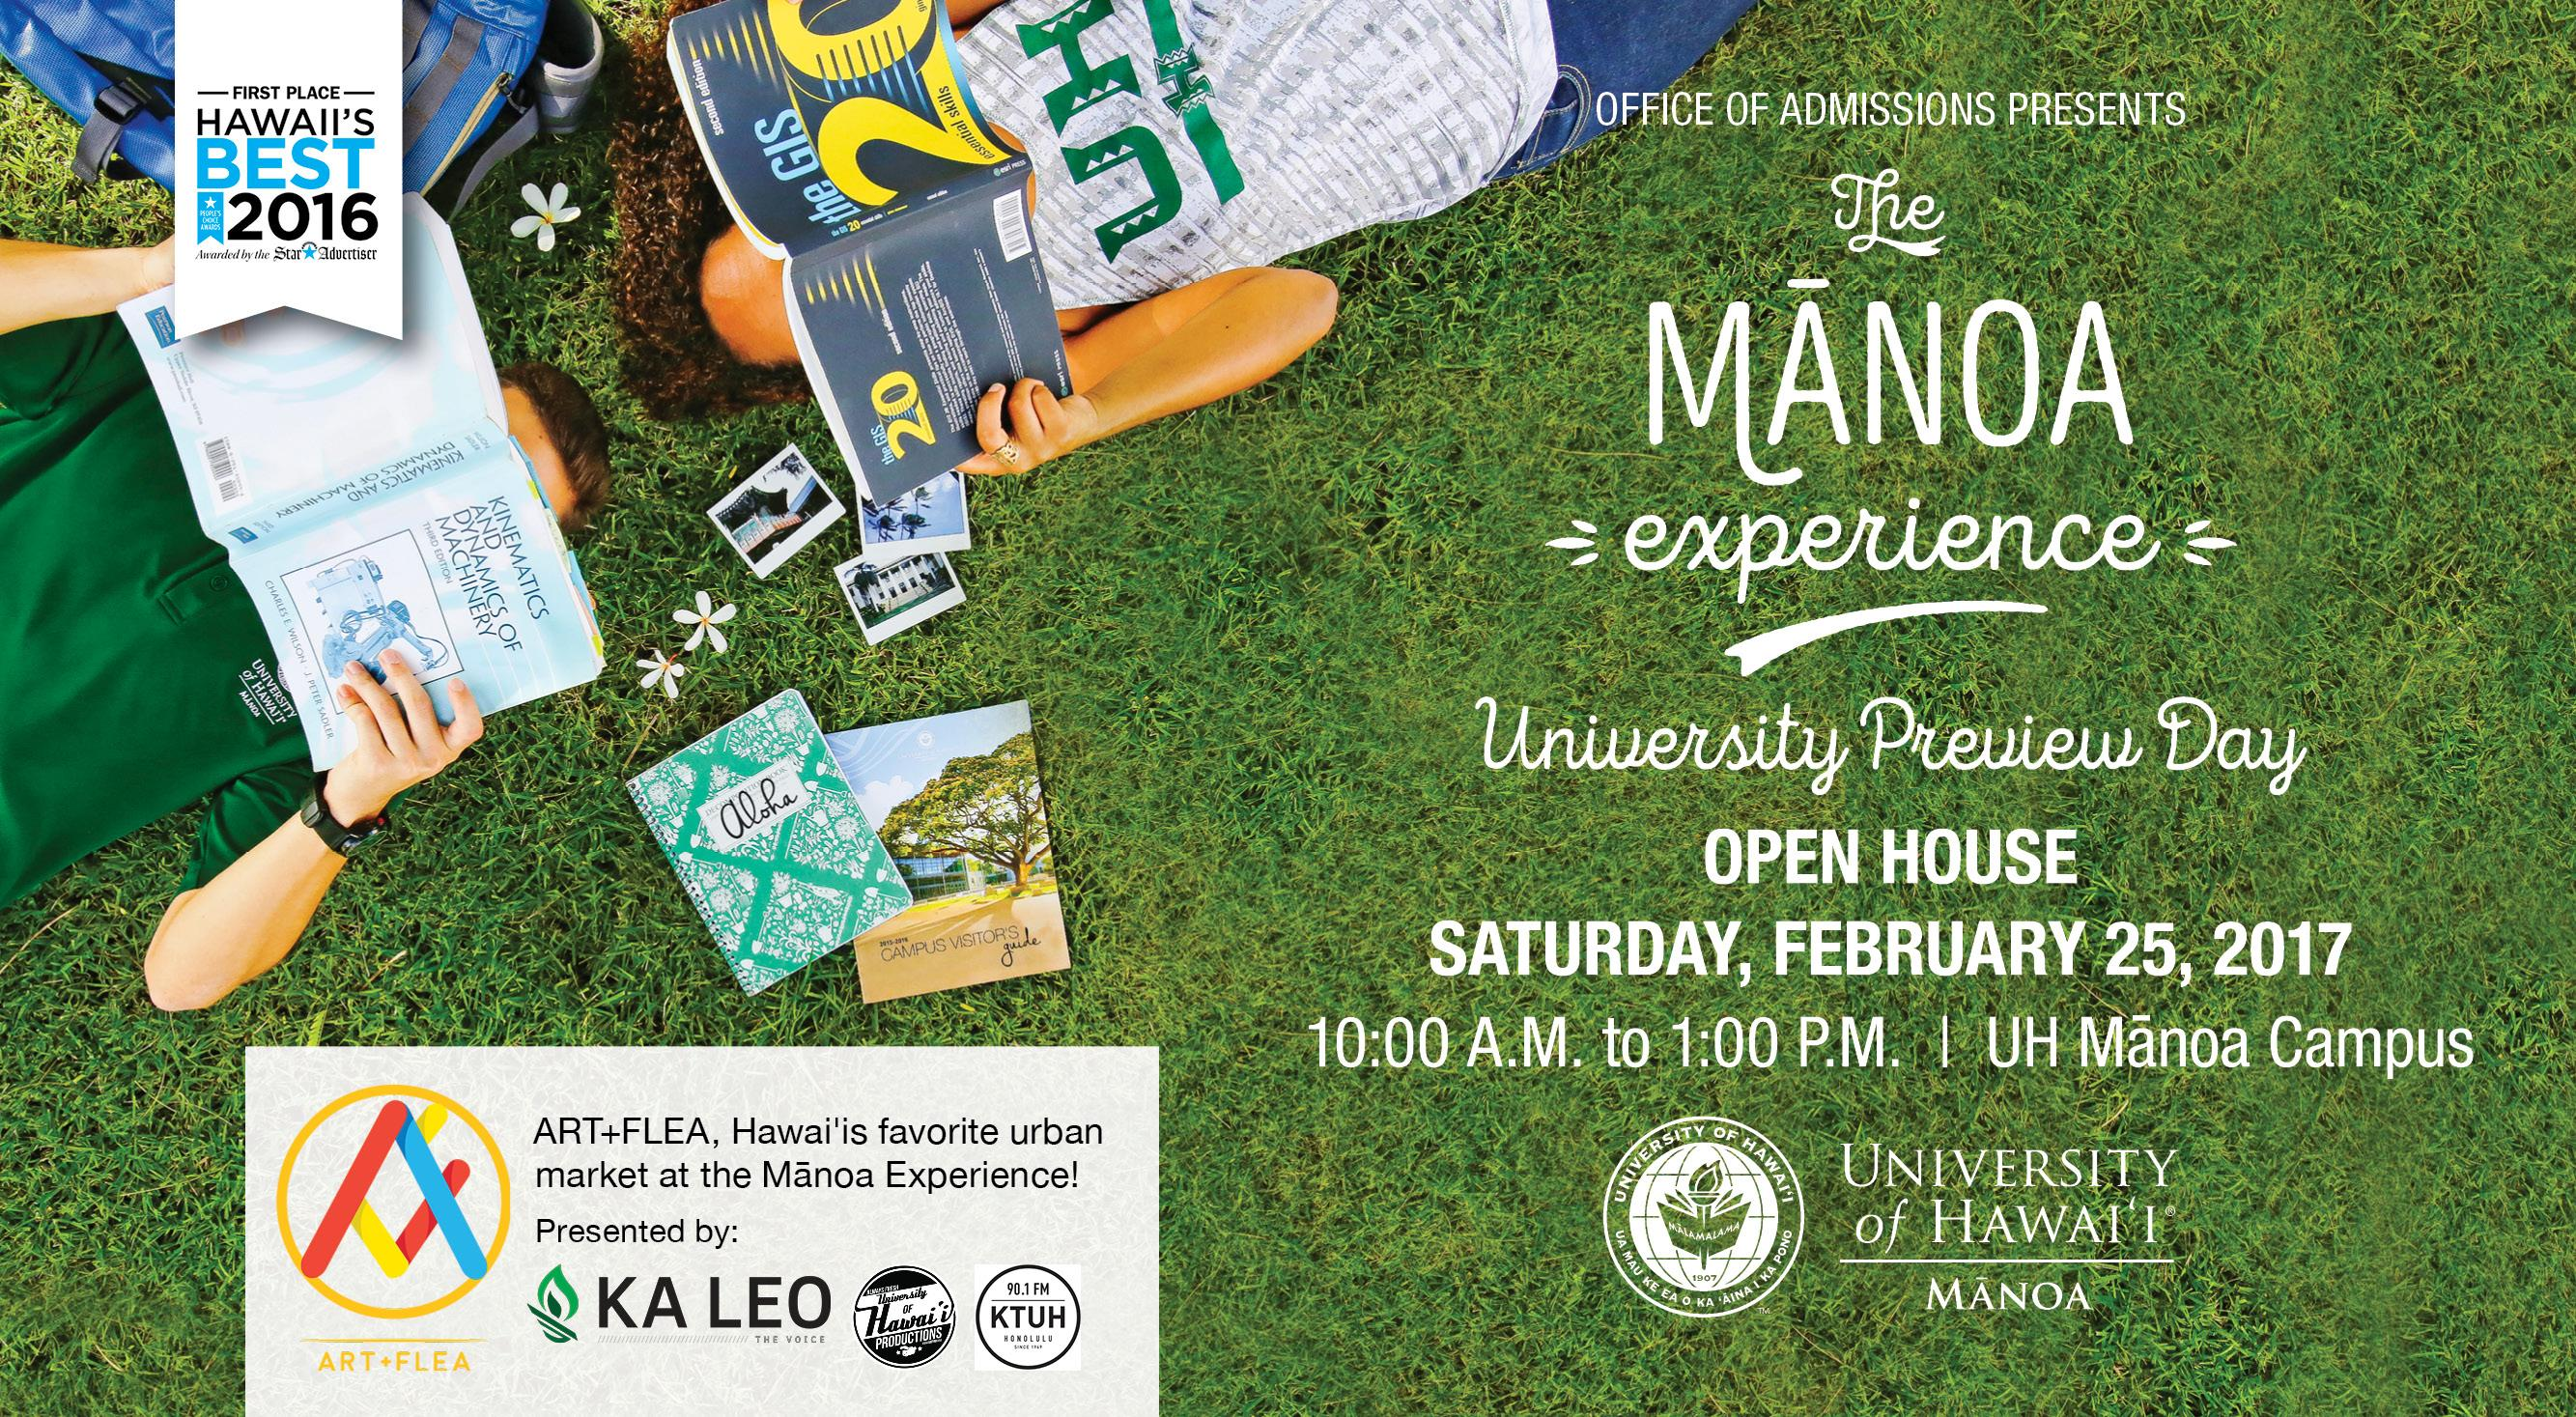 The Public Is Invited To The Mānoa Experience   University Preview Day On  Saturday, February 25, 2017, From 10 A.m. To 1 P.m. At The University Of  Hawaiu0027i ...